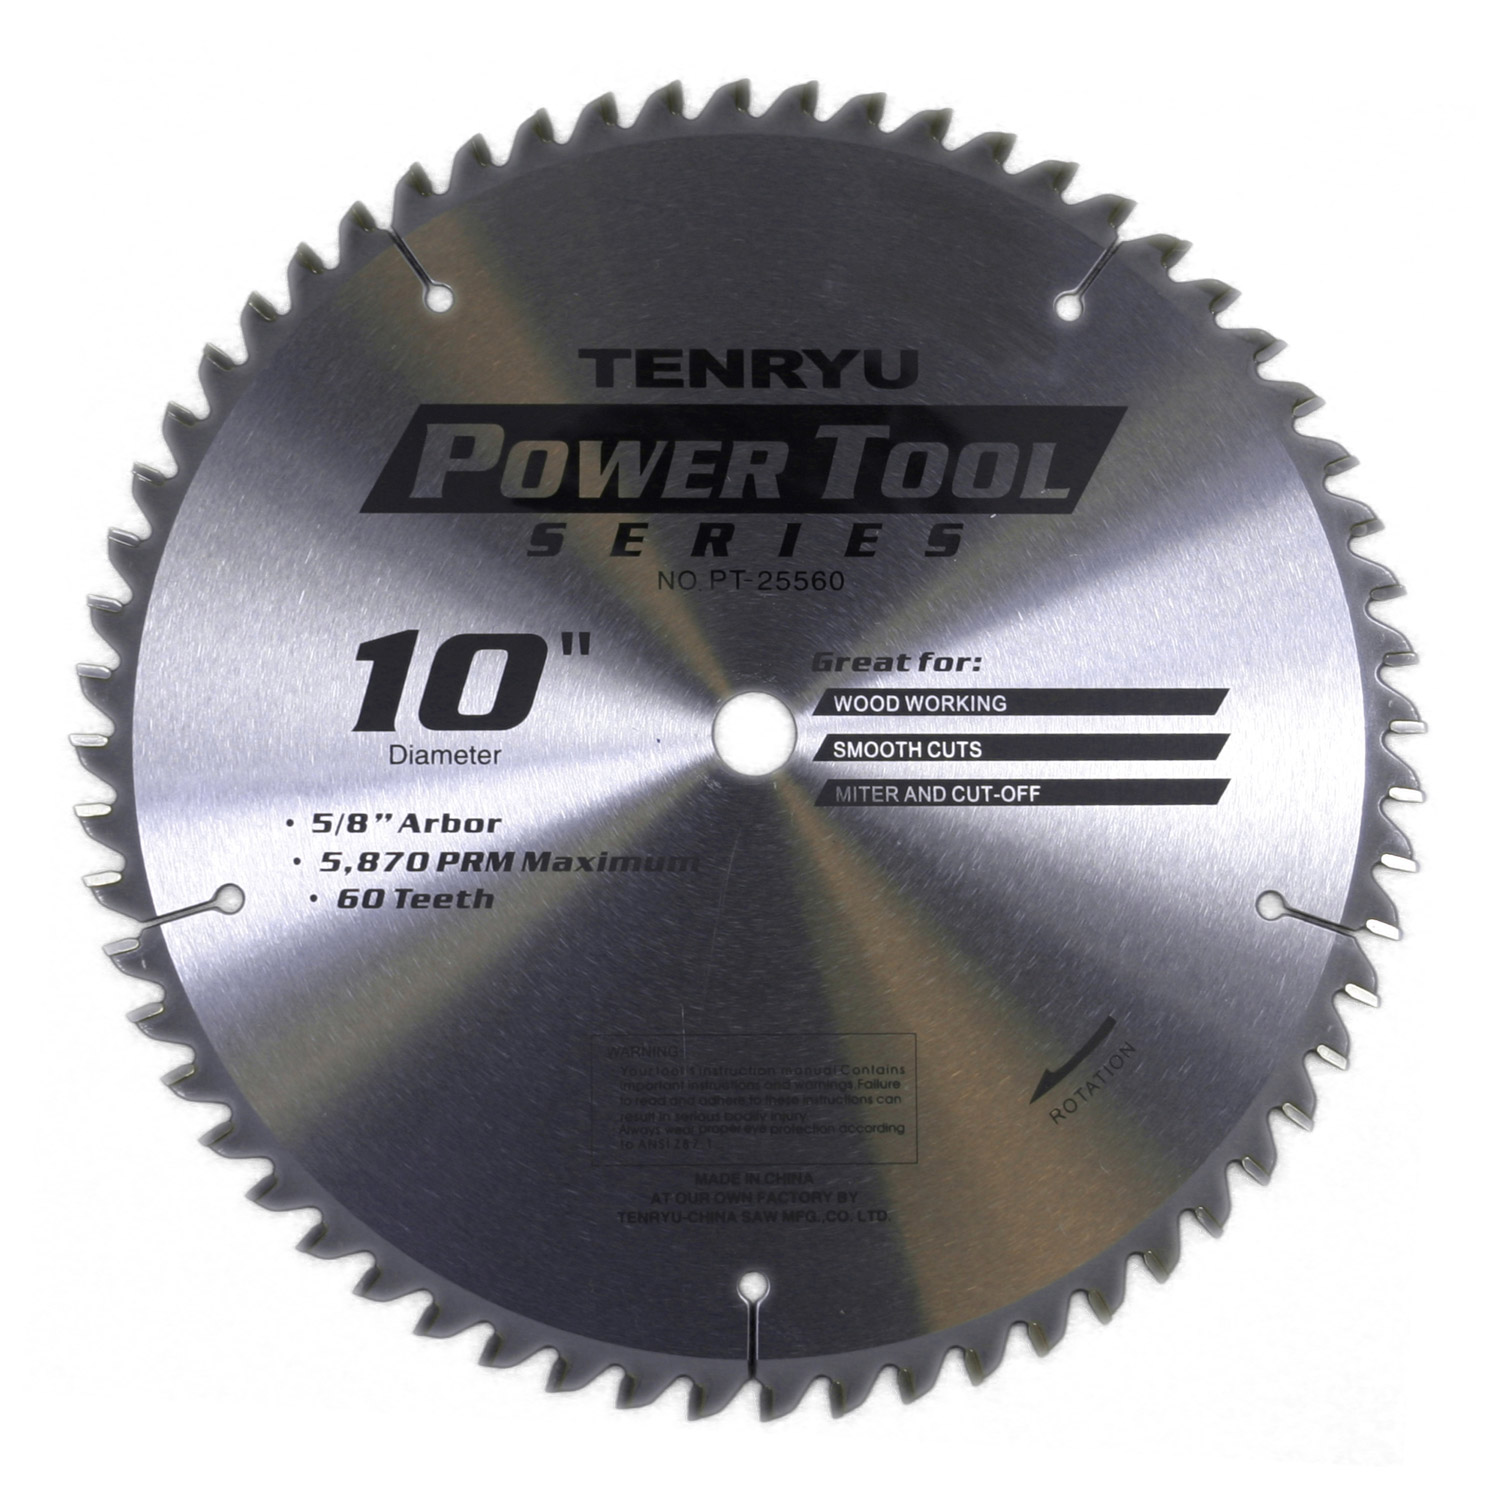 tenryu pt 25560 10 inch carbide tipped table saw blade ebay